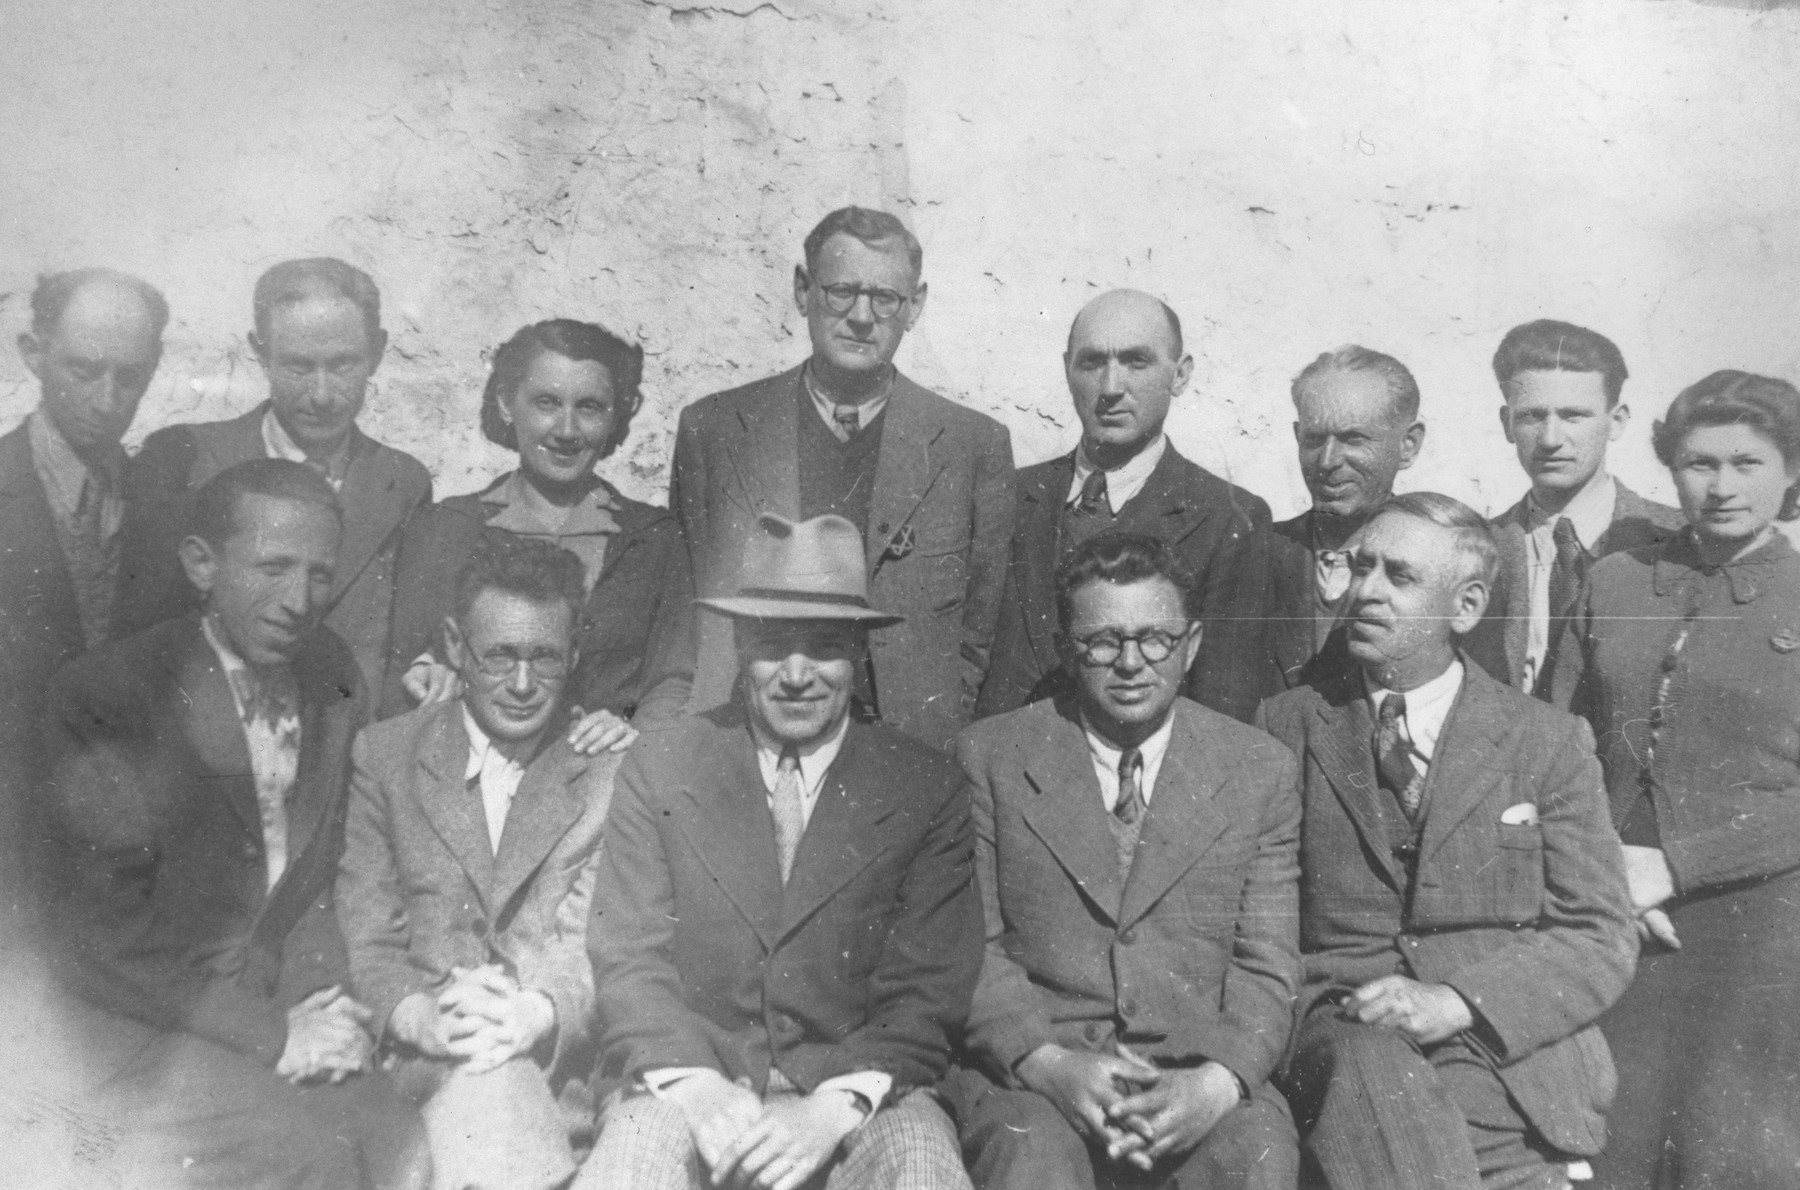 Group portrait of members of the Jewish administration at the Turnatoria, the machine shop established by Siegfried Jagendorf in the Mogilev-Podolskiy foundry.  Those pictured include Max Heissman, Jonas Kessler, Siegfried Jagendorf, Pinkas Katz, F. Stern, Resh, B. David Langberg, S. Gutmann, and Klinger.